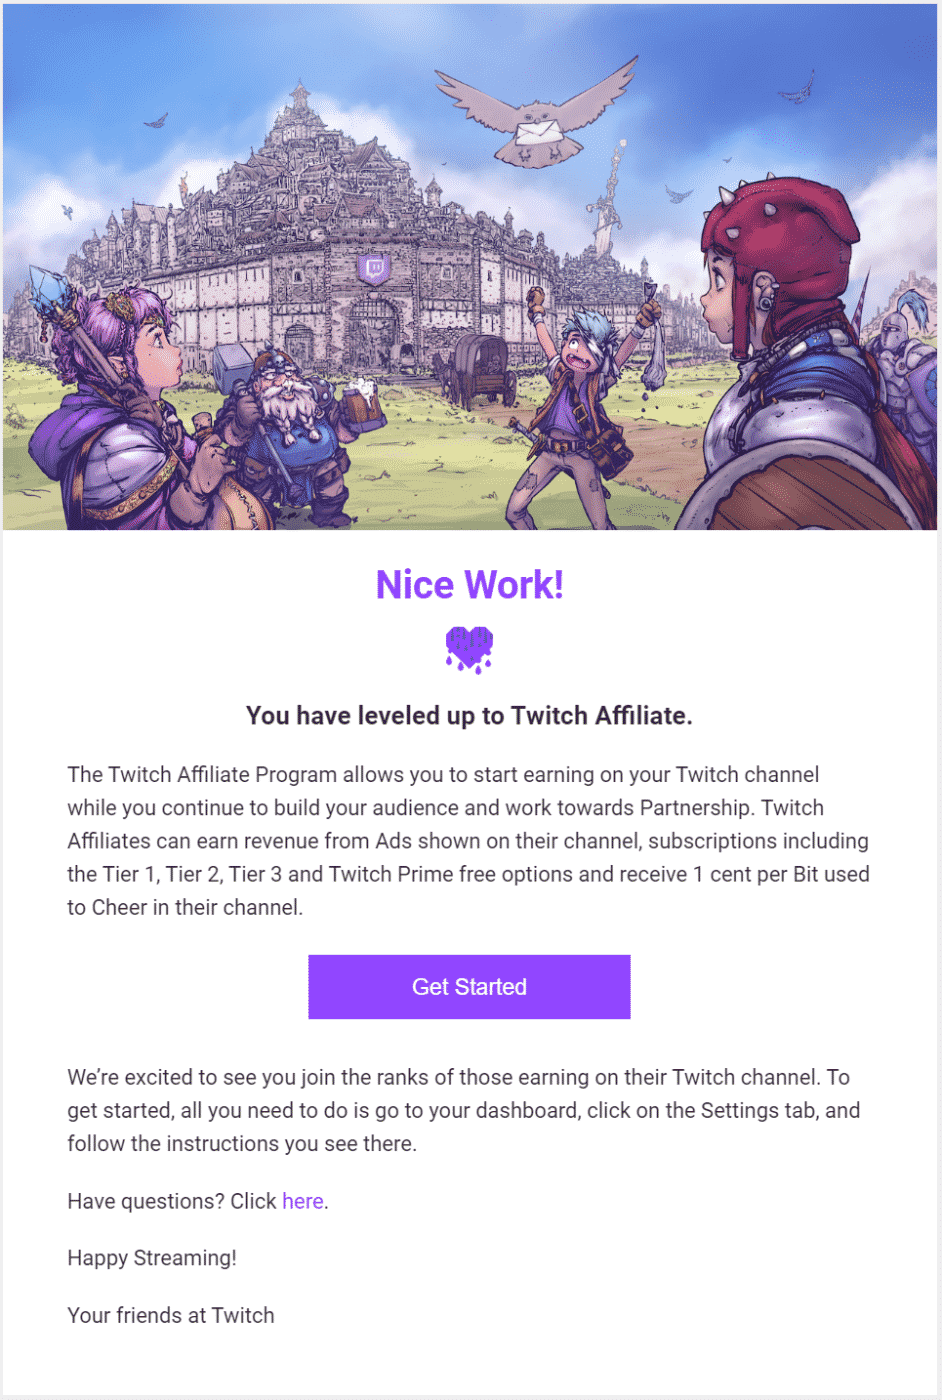 Twitch Affiliate Invite Email